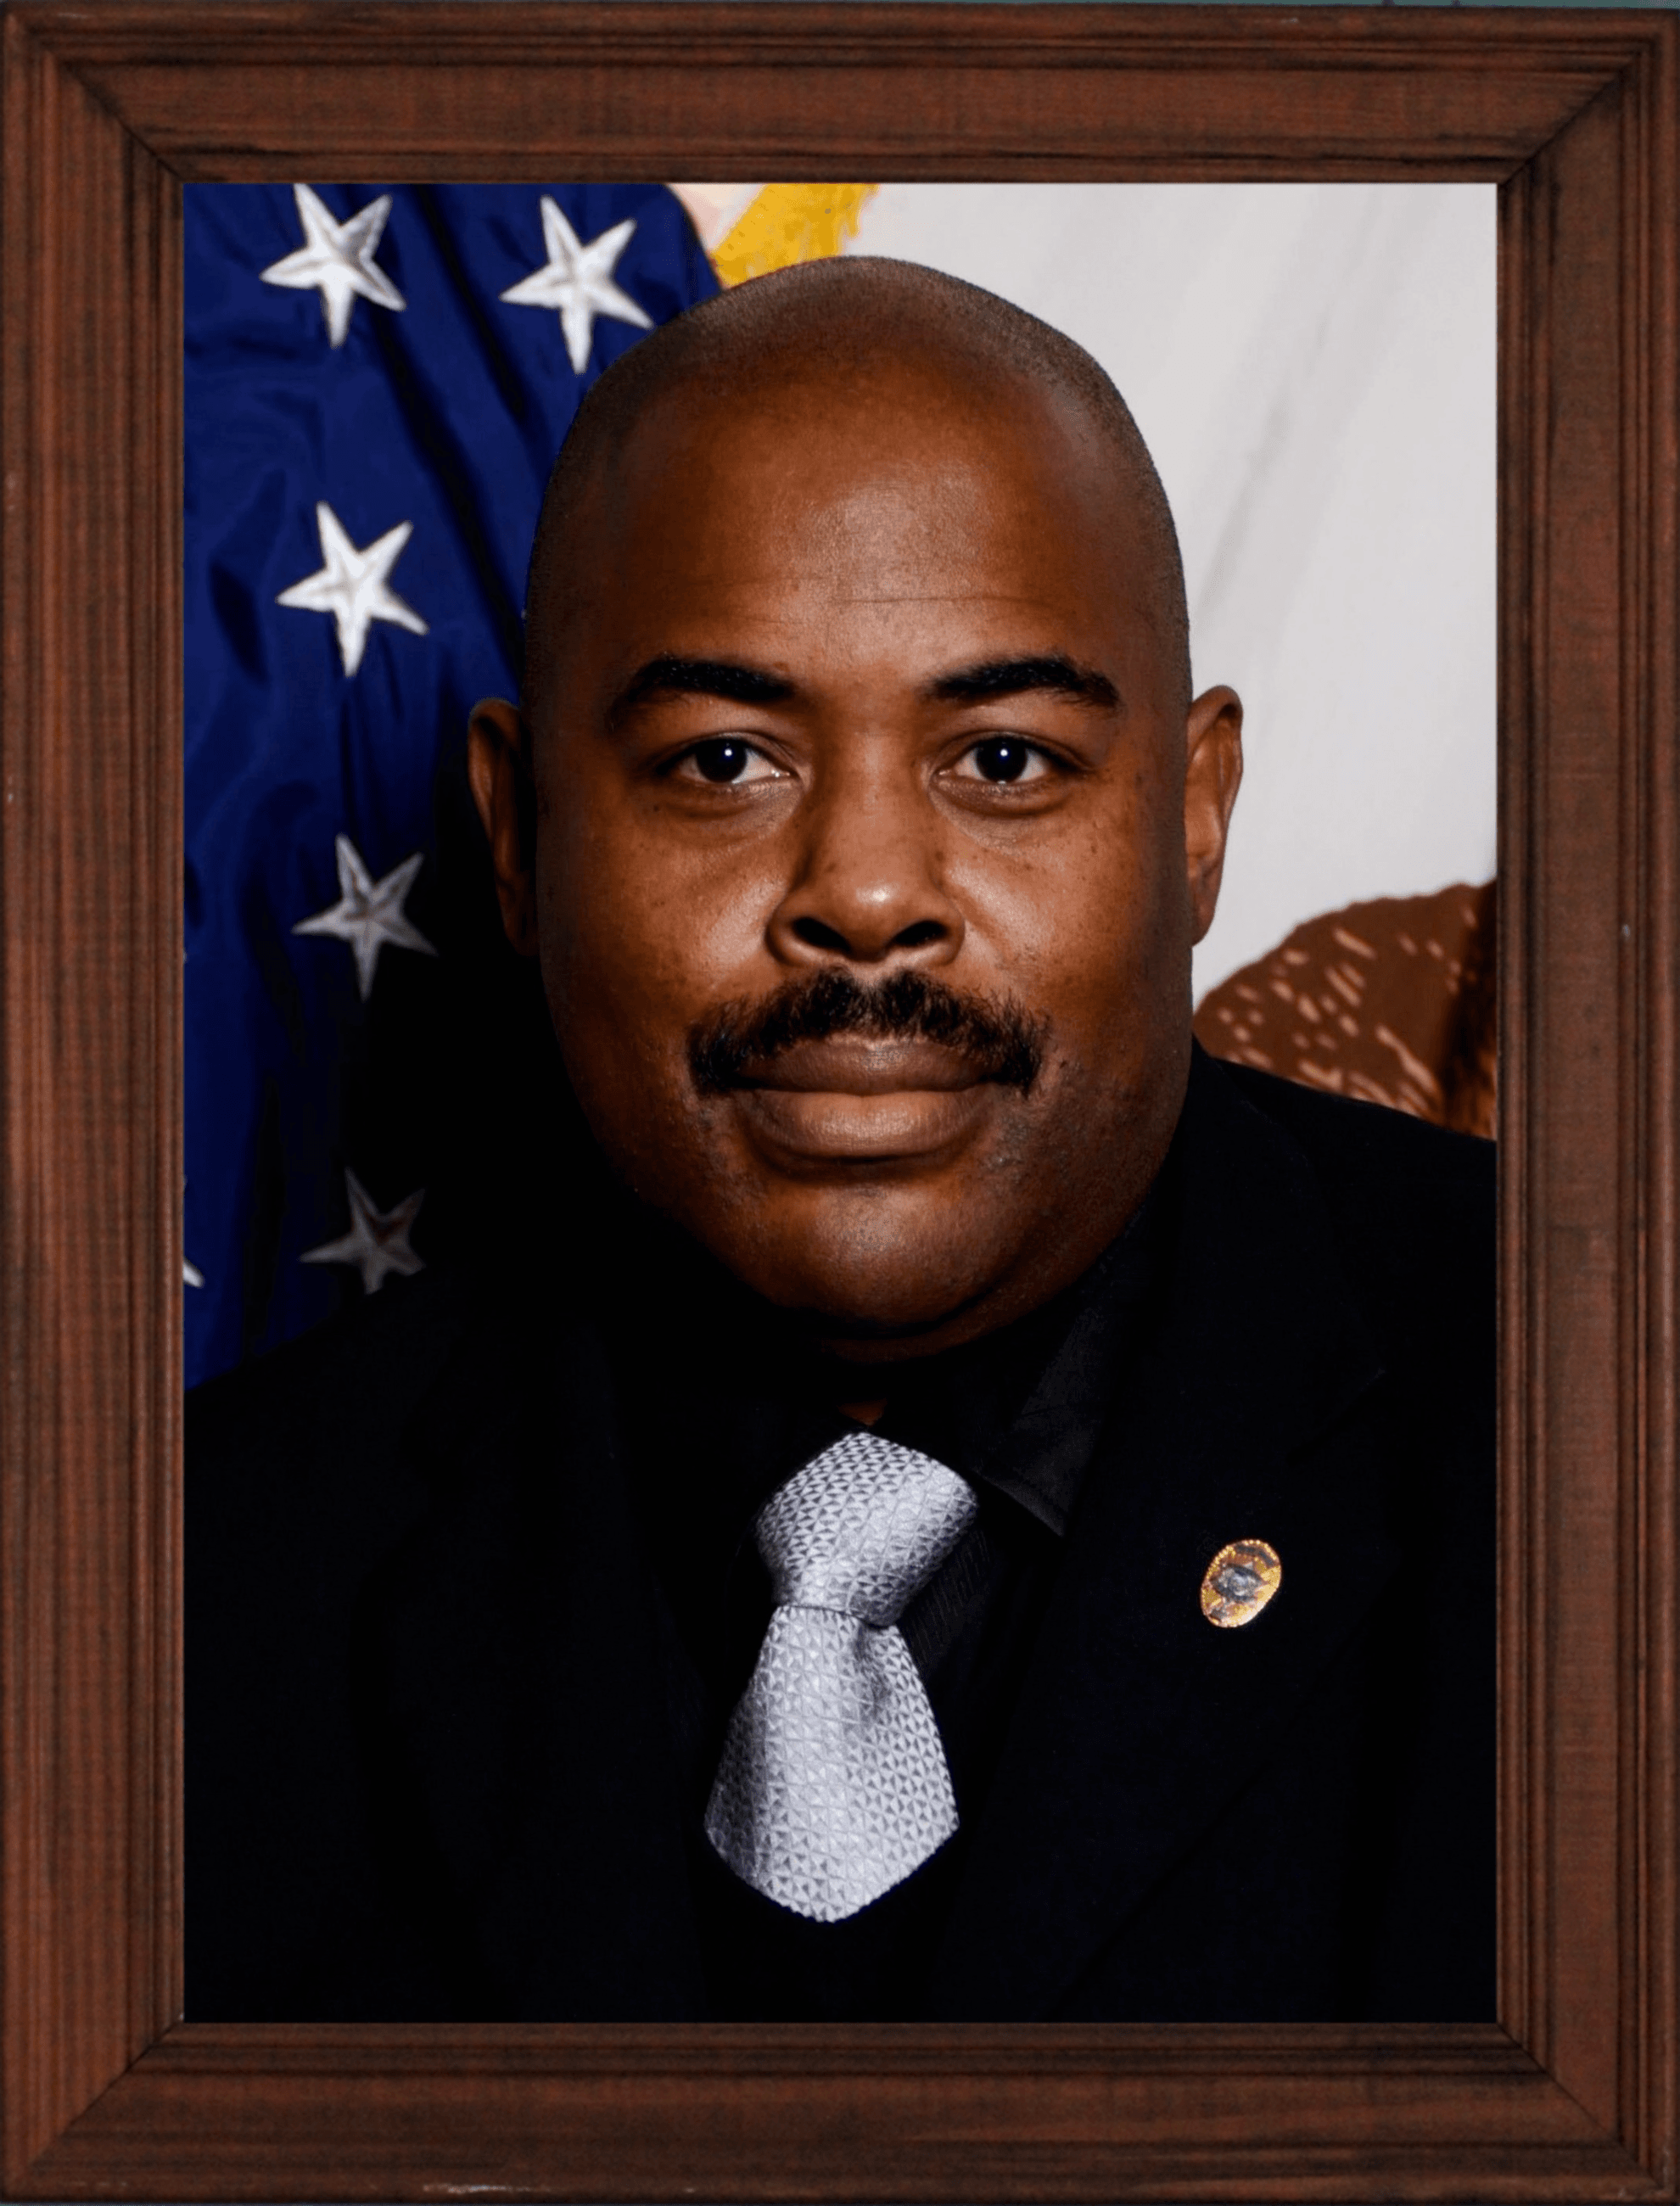 Jermaine Wright Sr., Mayor Pro Tem